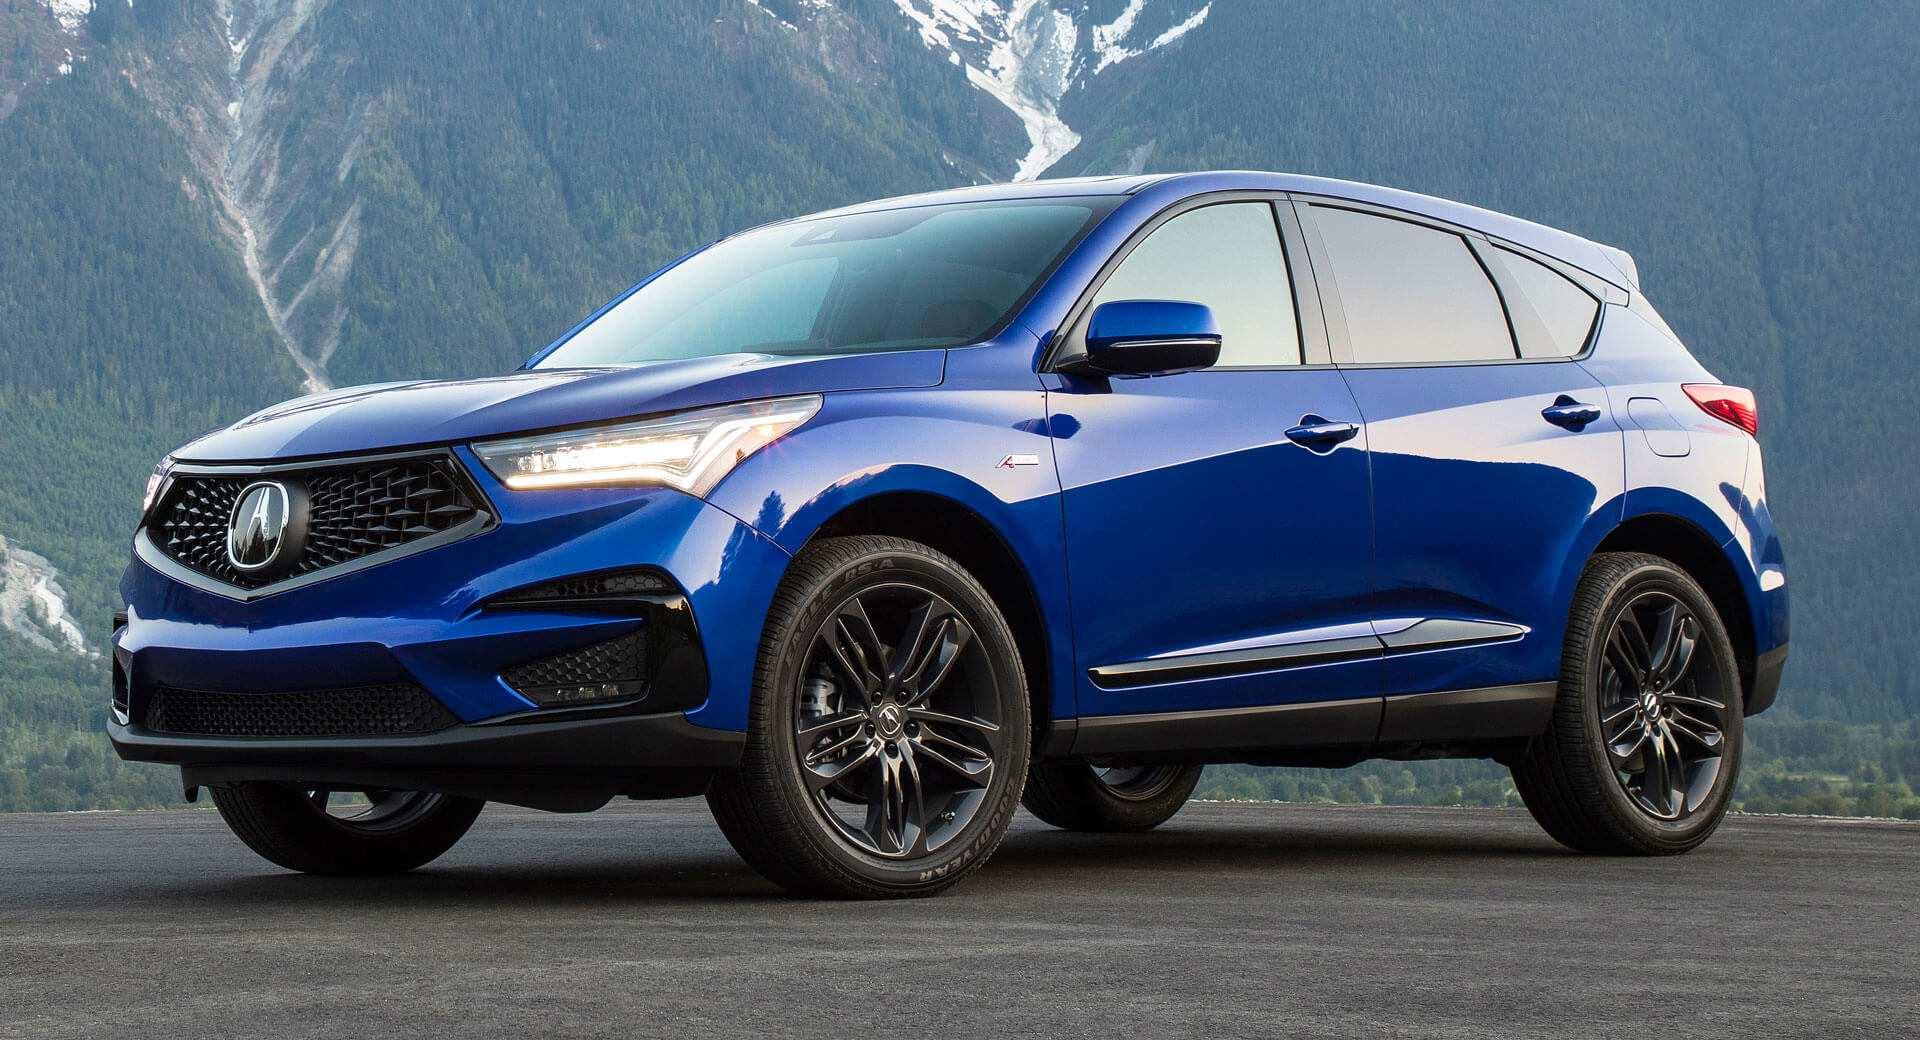 73 Great When Is The 2020 Acura Rdx Coming Out Research New with When Is The 2020 Acura Rdx Coming Out